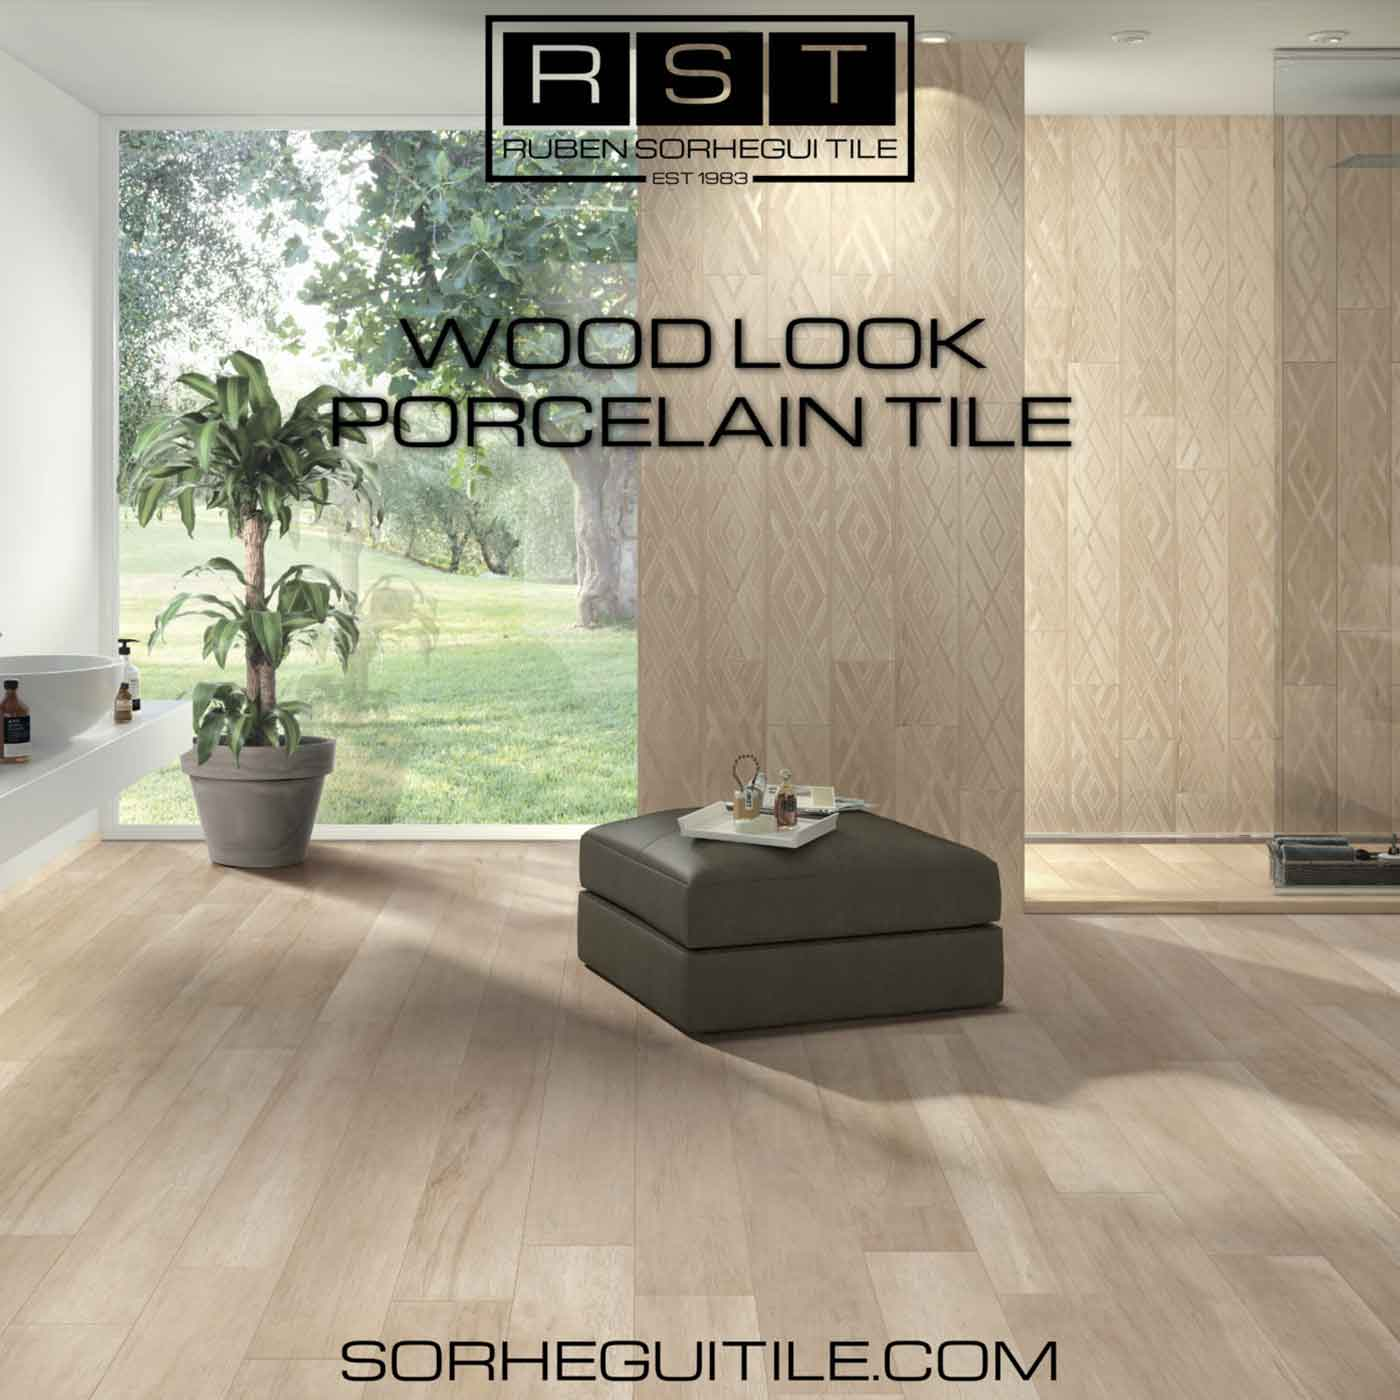 Browse Wood Porcelain Tile slections available at Ruben Sorhegui Tile Distributors Southwest Florida's premier tile, stone and mixed mosaics distributor and tile showroom